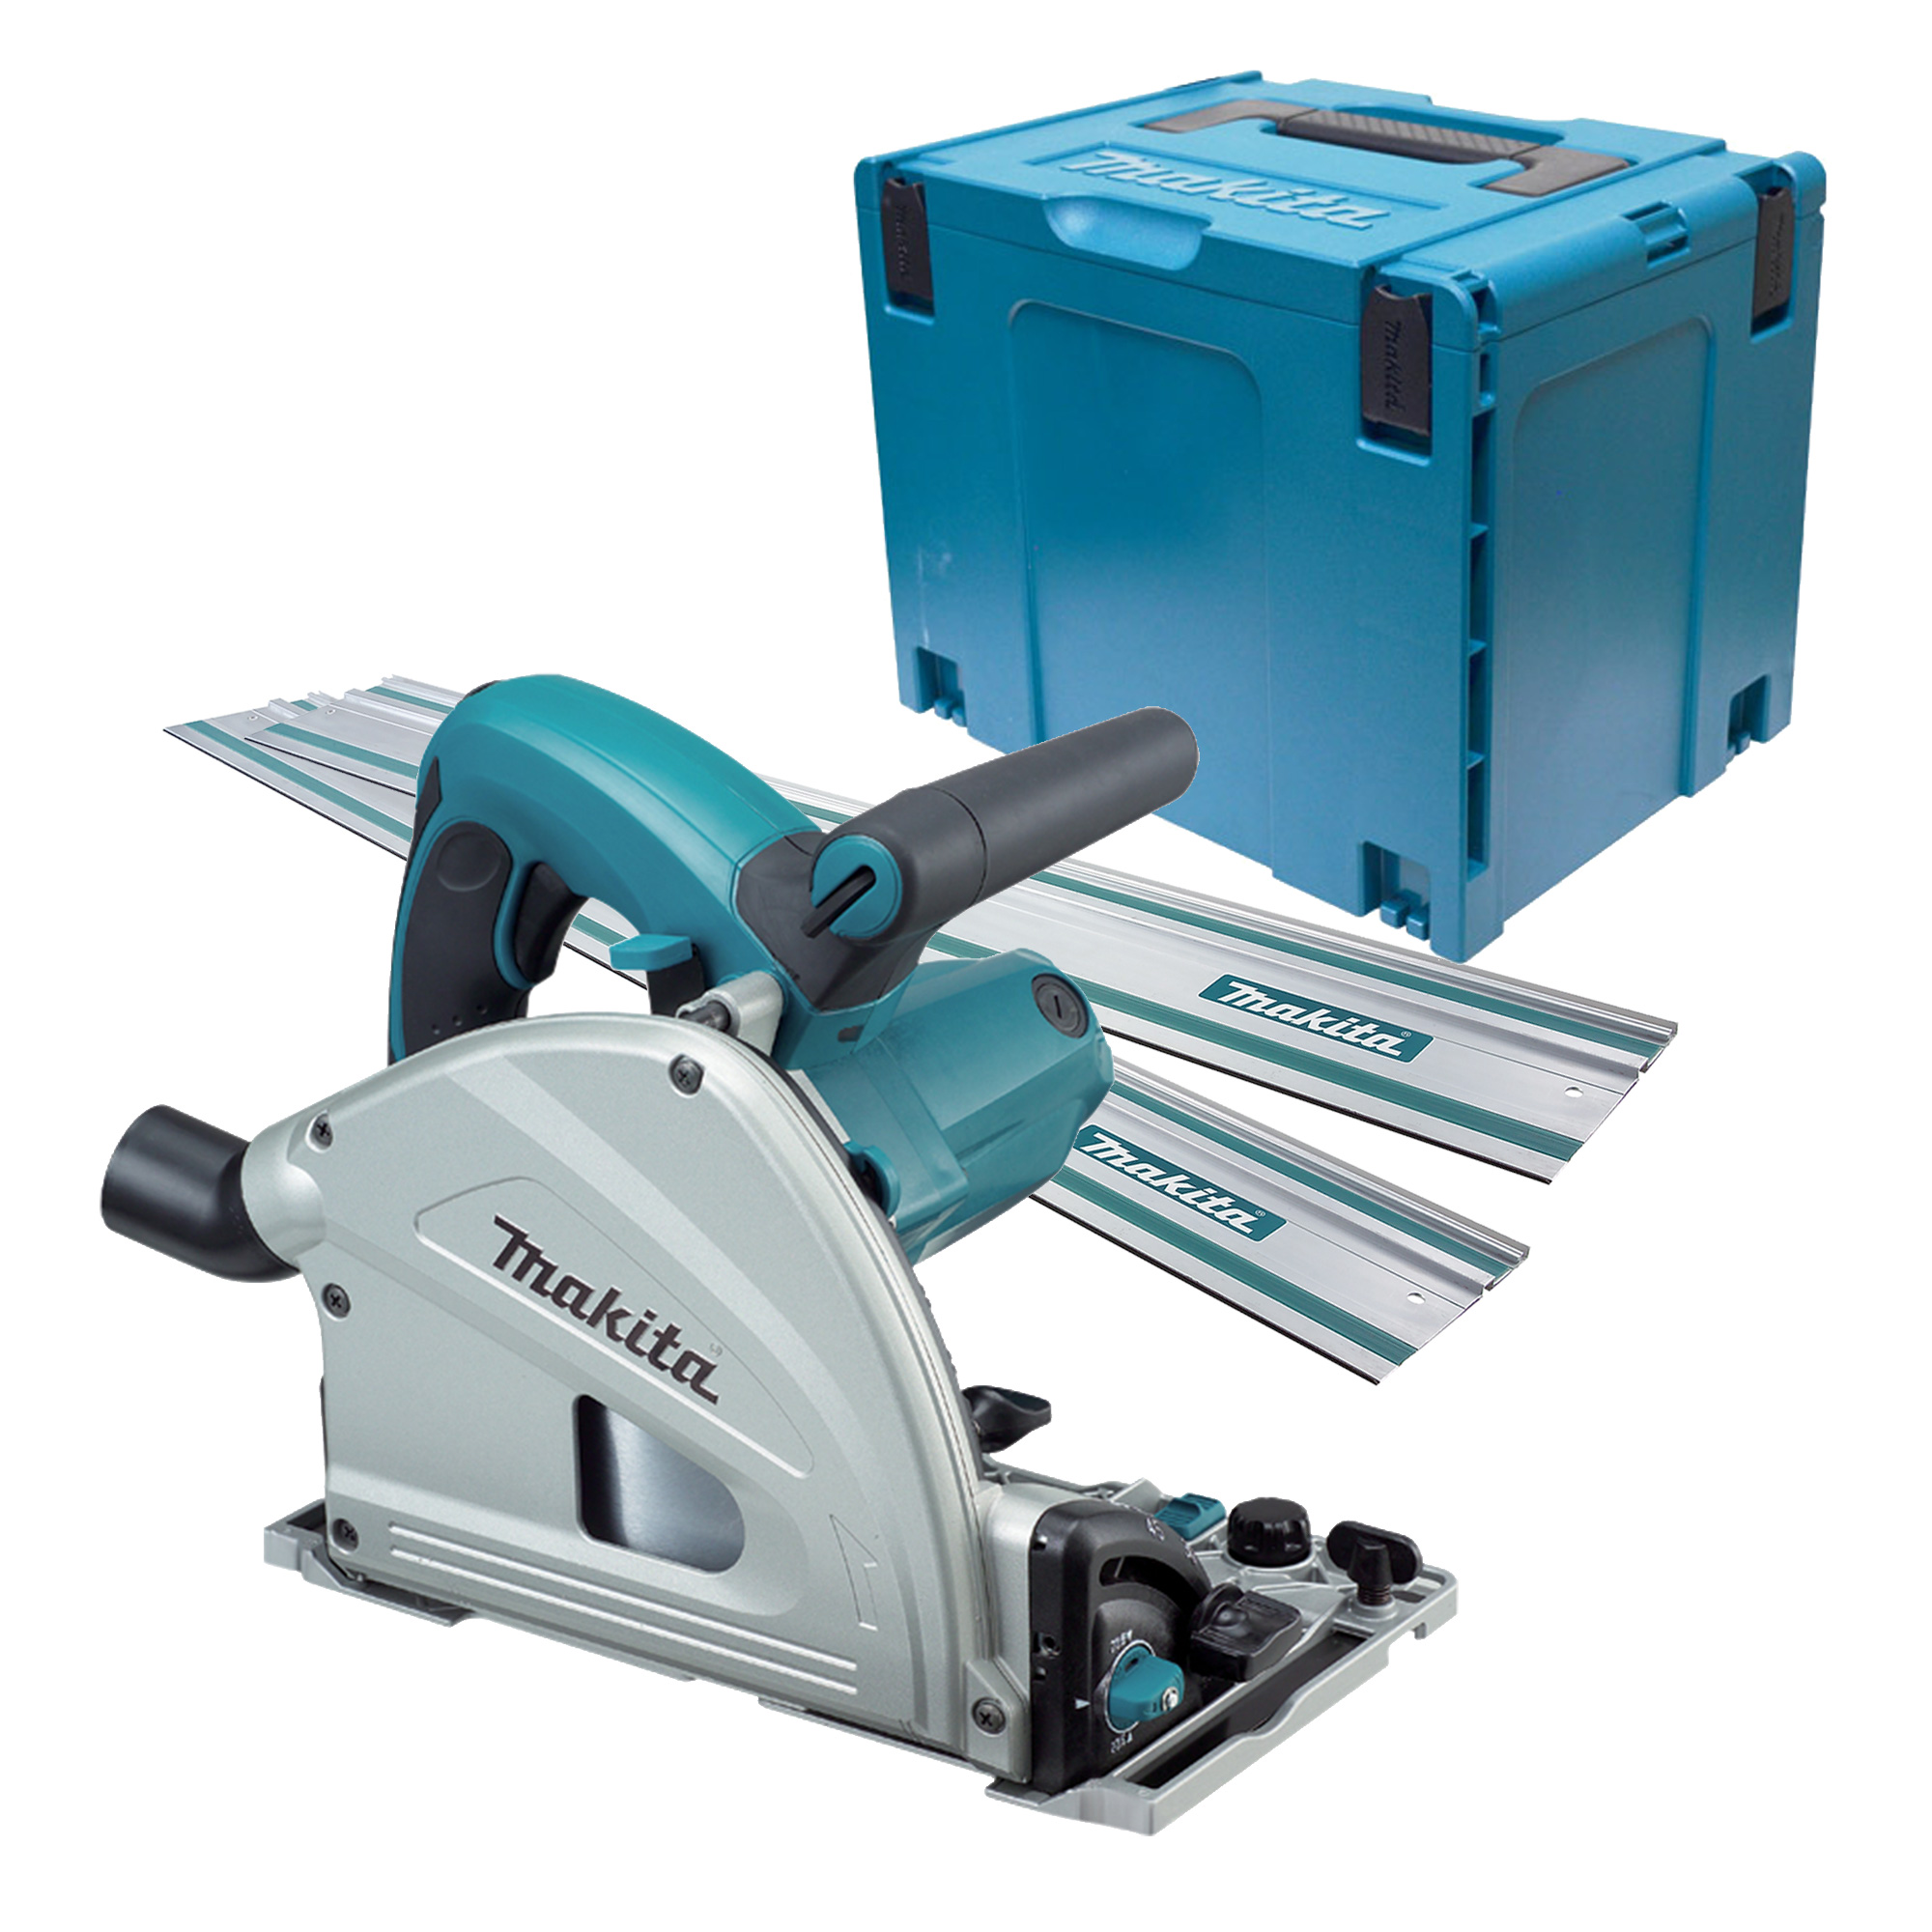 makita sp6000j1 kit makita plunge cut saw package. Black Bedroom Furniture Sets. Home Design Ideas